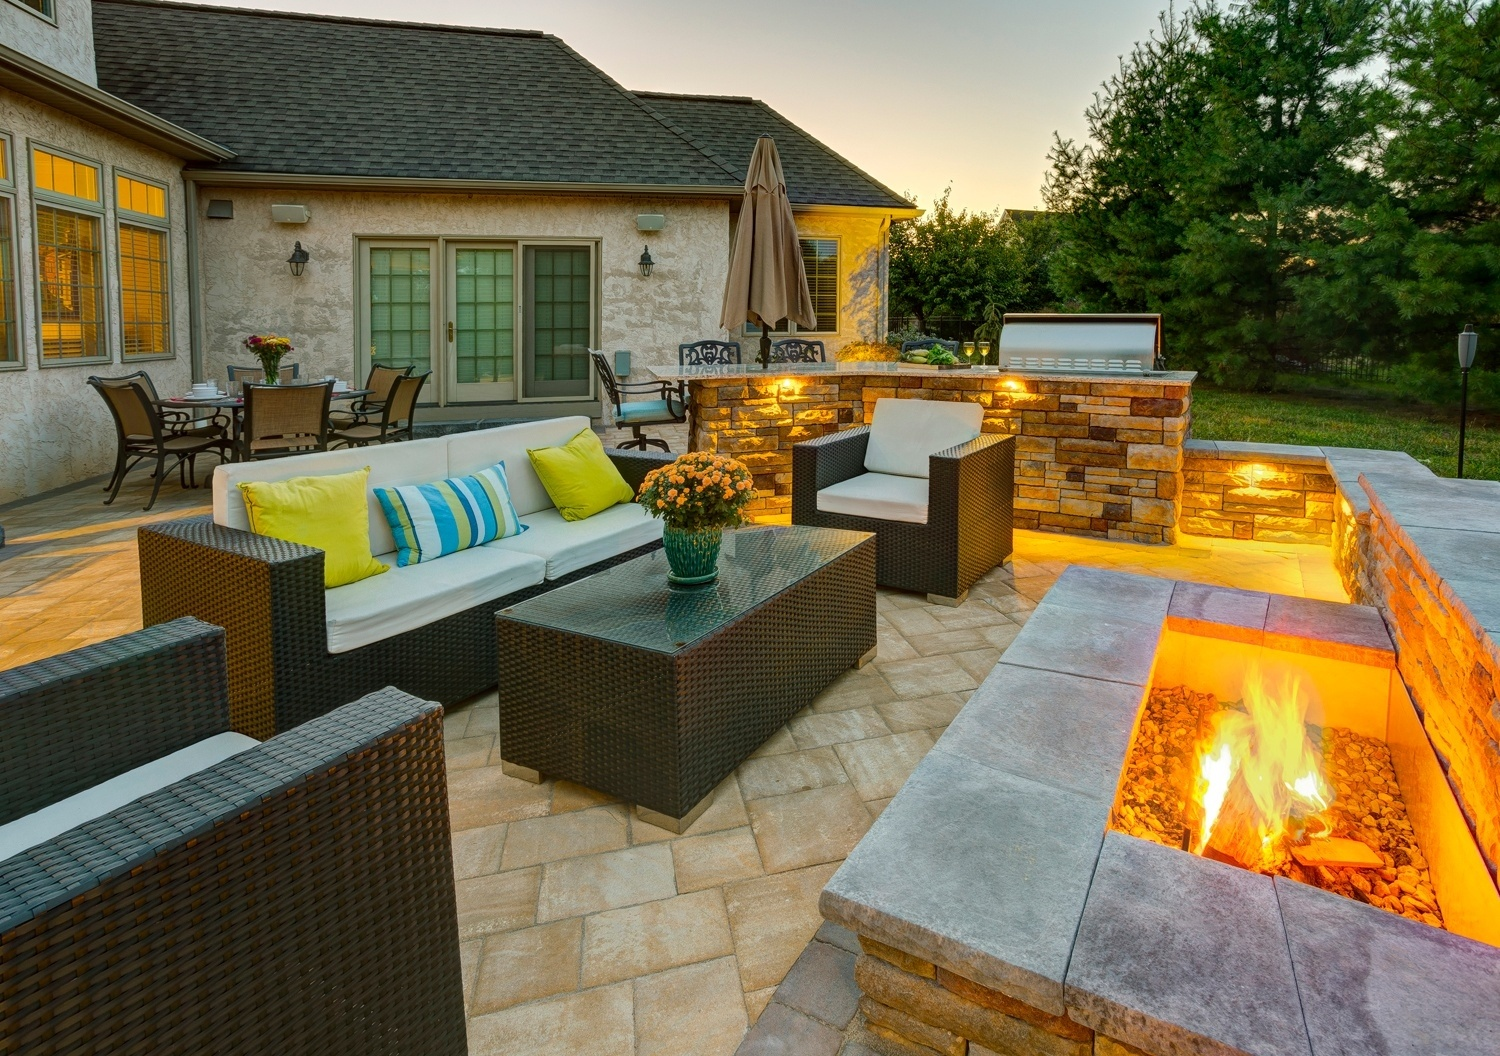 Lanscaping contractor in Lancaster, PA servicing Reading, York, Harrisburg and Hershey